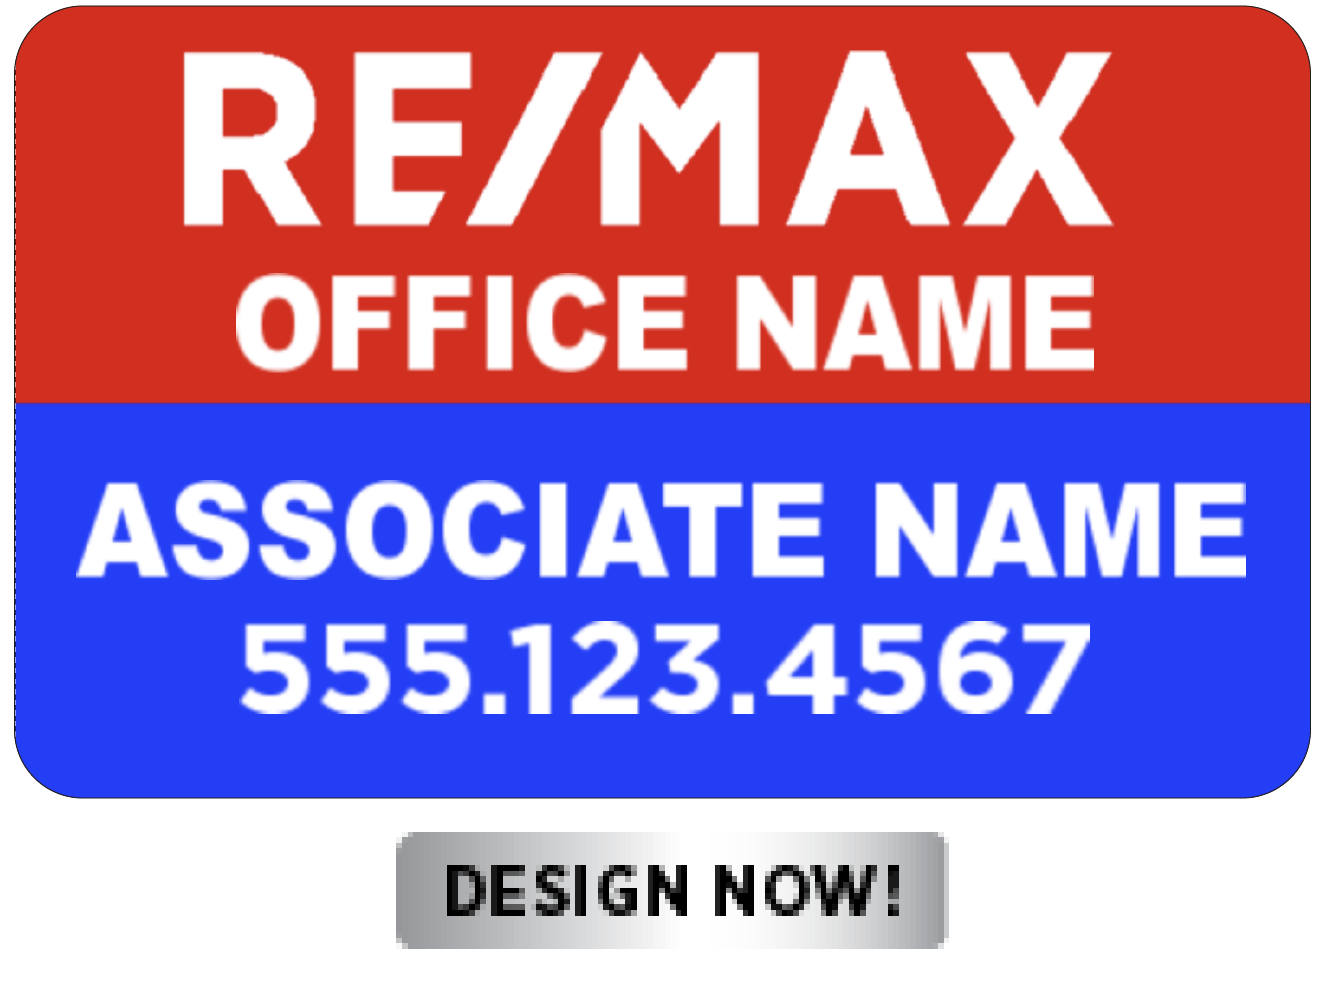 remax11x18magnetredbluerevised.png